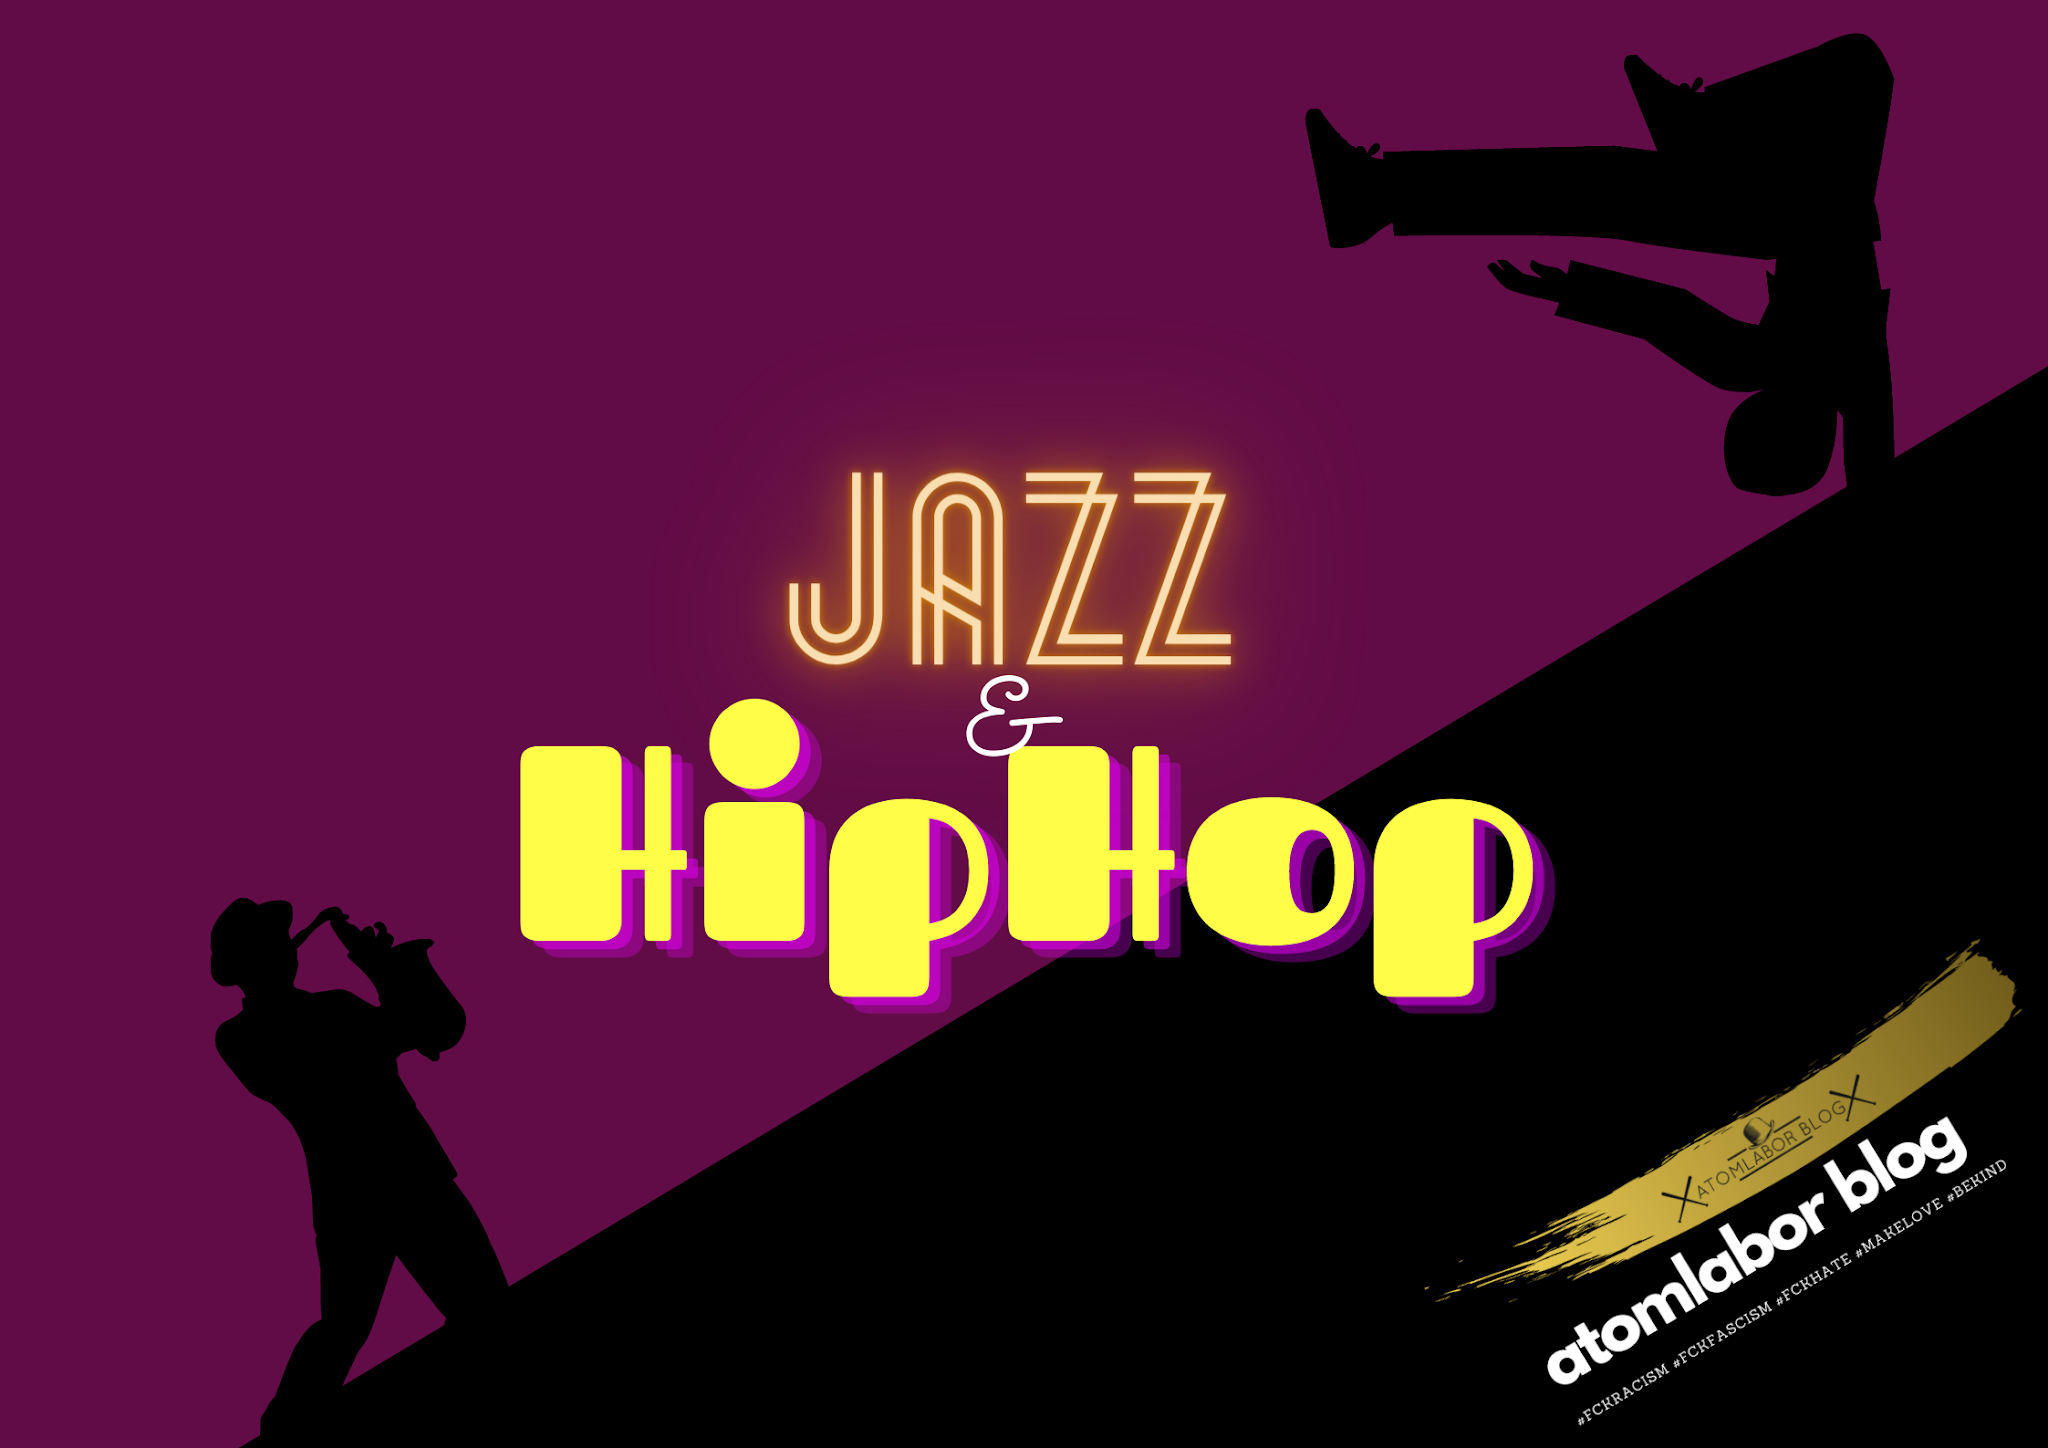 Jazz is the mother or father of hip hop music | Musikgeschichte